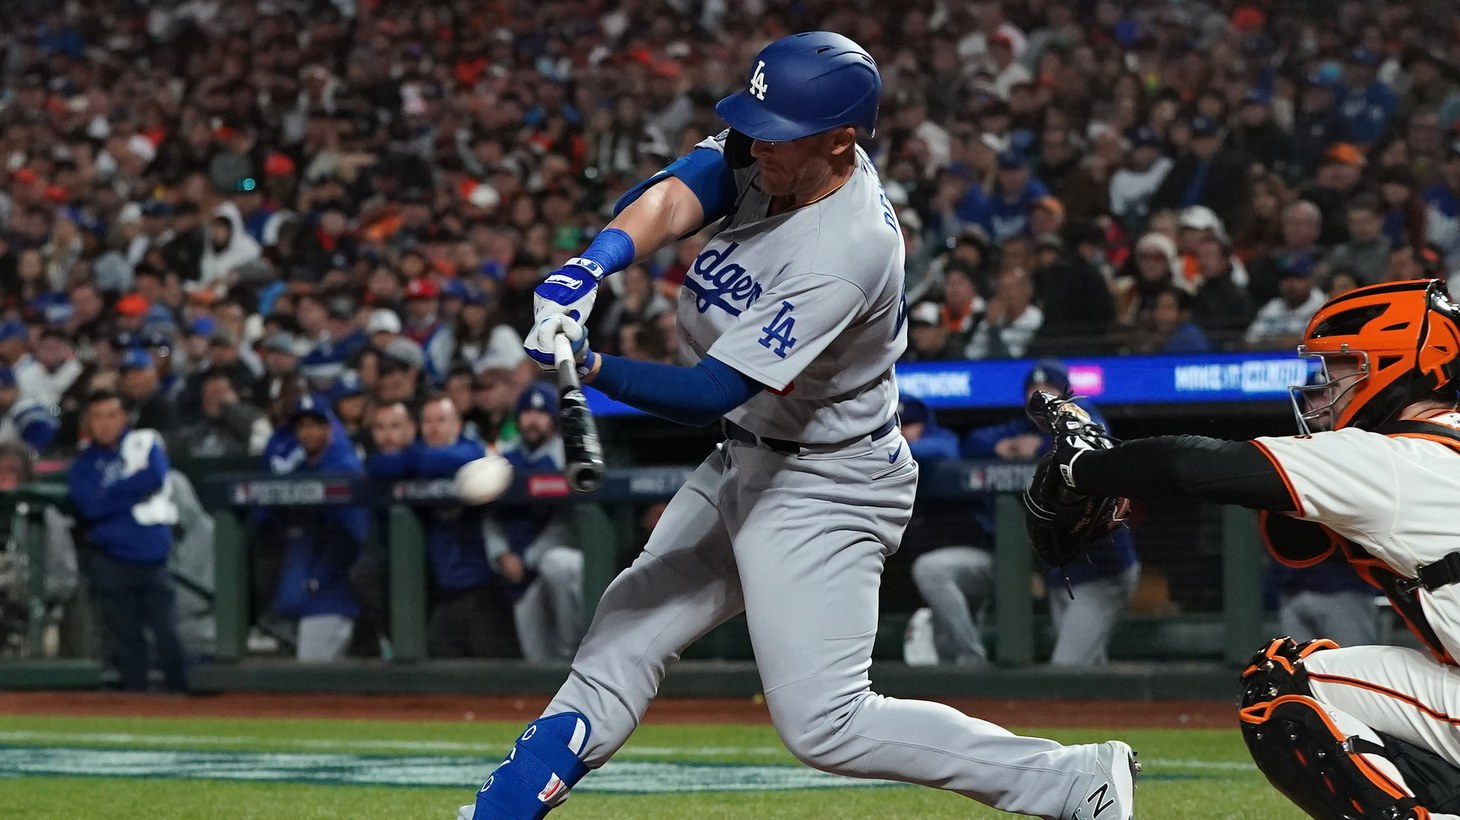 Los Angeles Dodgers pinch hitter Matt Beaty (45) drives in a run with a single against the San Francisco Giants in the eighth inning during game two of the 2021 NLDS at Oracle Park, San Francisco, California, Oct 9, 2021.